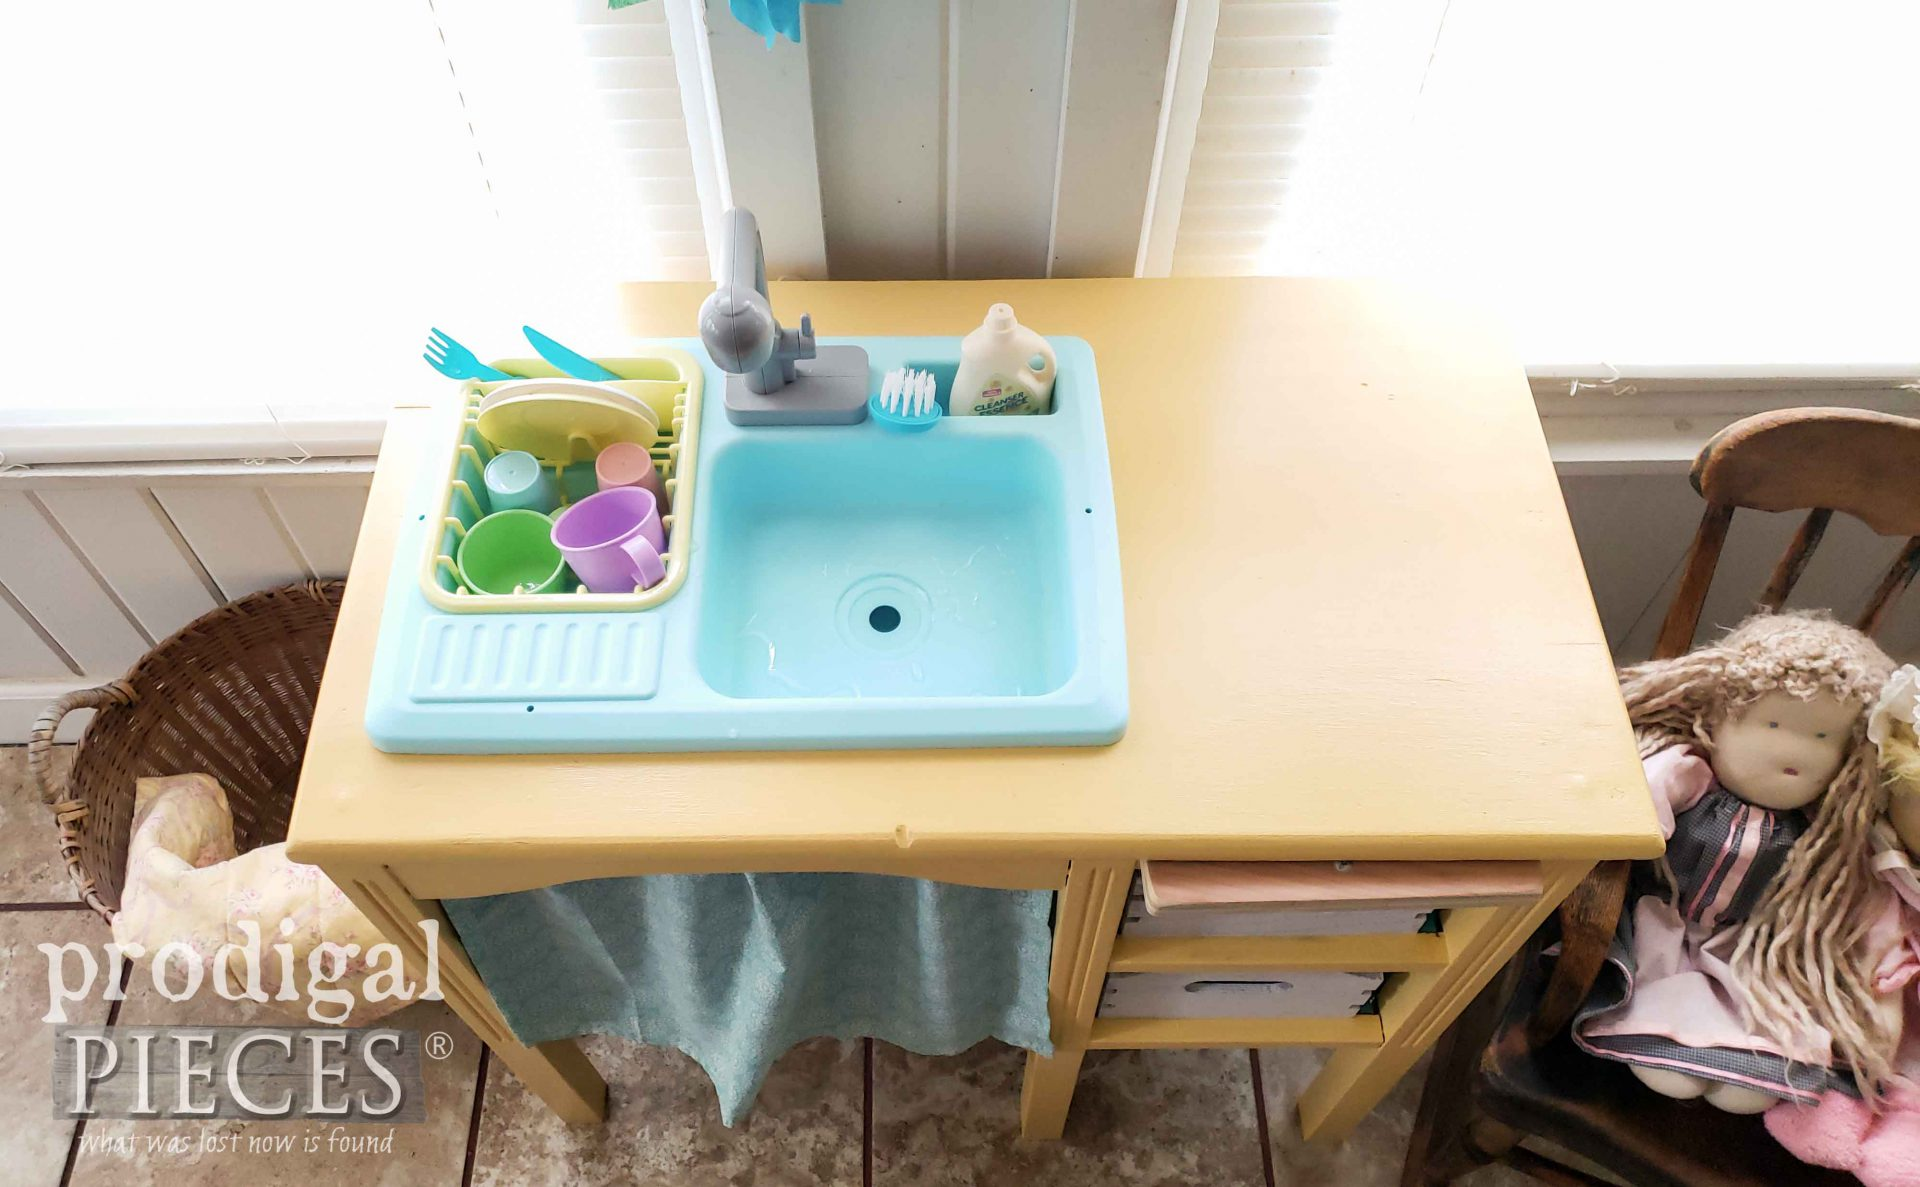 Play Kitchen Top with Working Sink by Prodigal Pieces | prodigalpieces.com #prodigalpieces #diy #toys